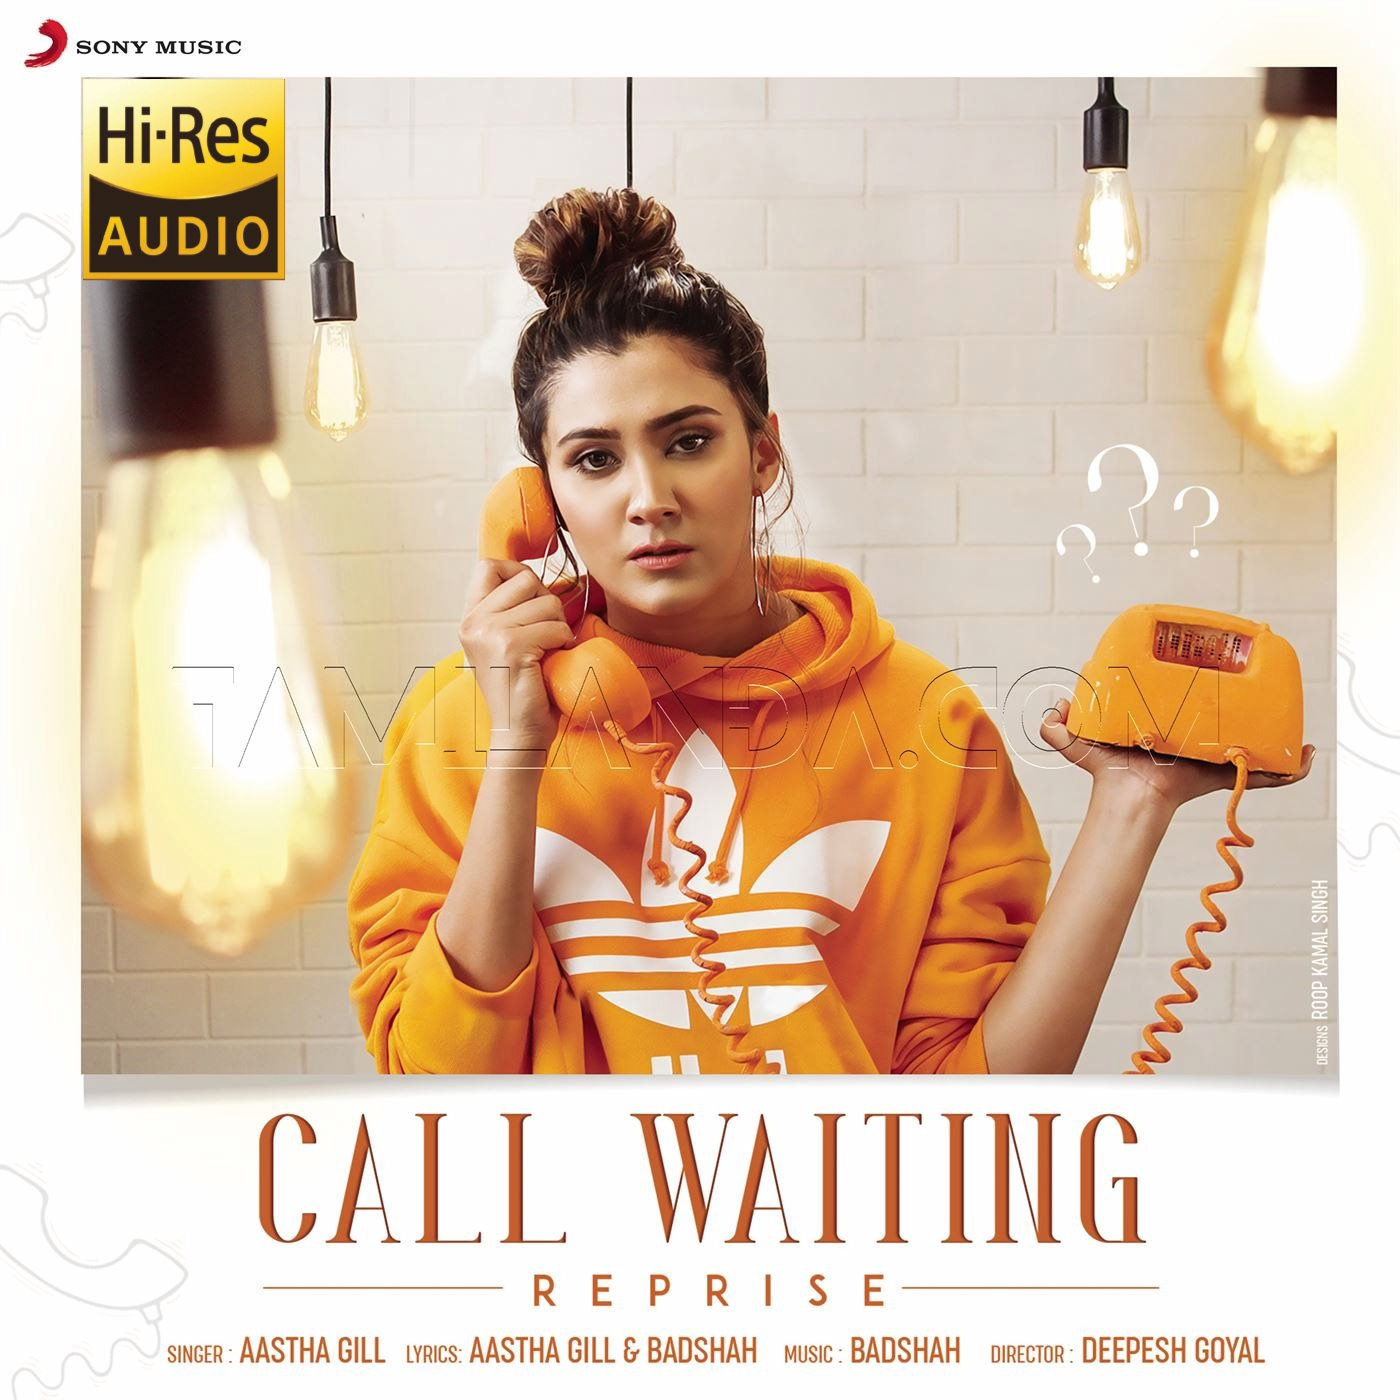 Call Waiting (Reprise) – Single FLAC Song (2018) (24 BIT)